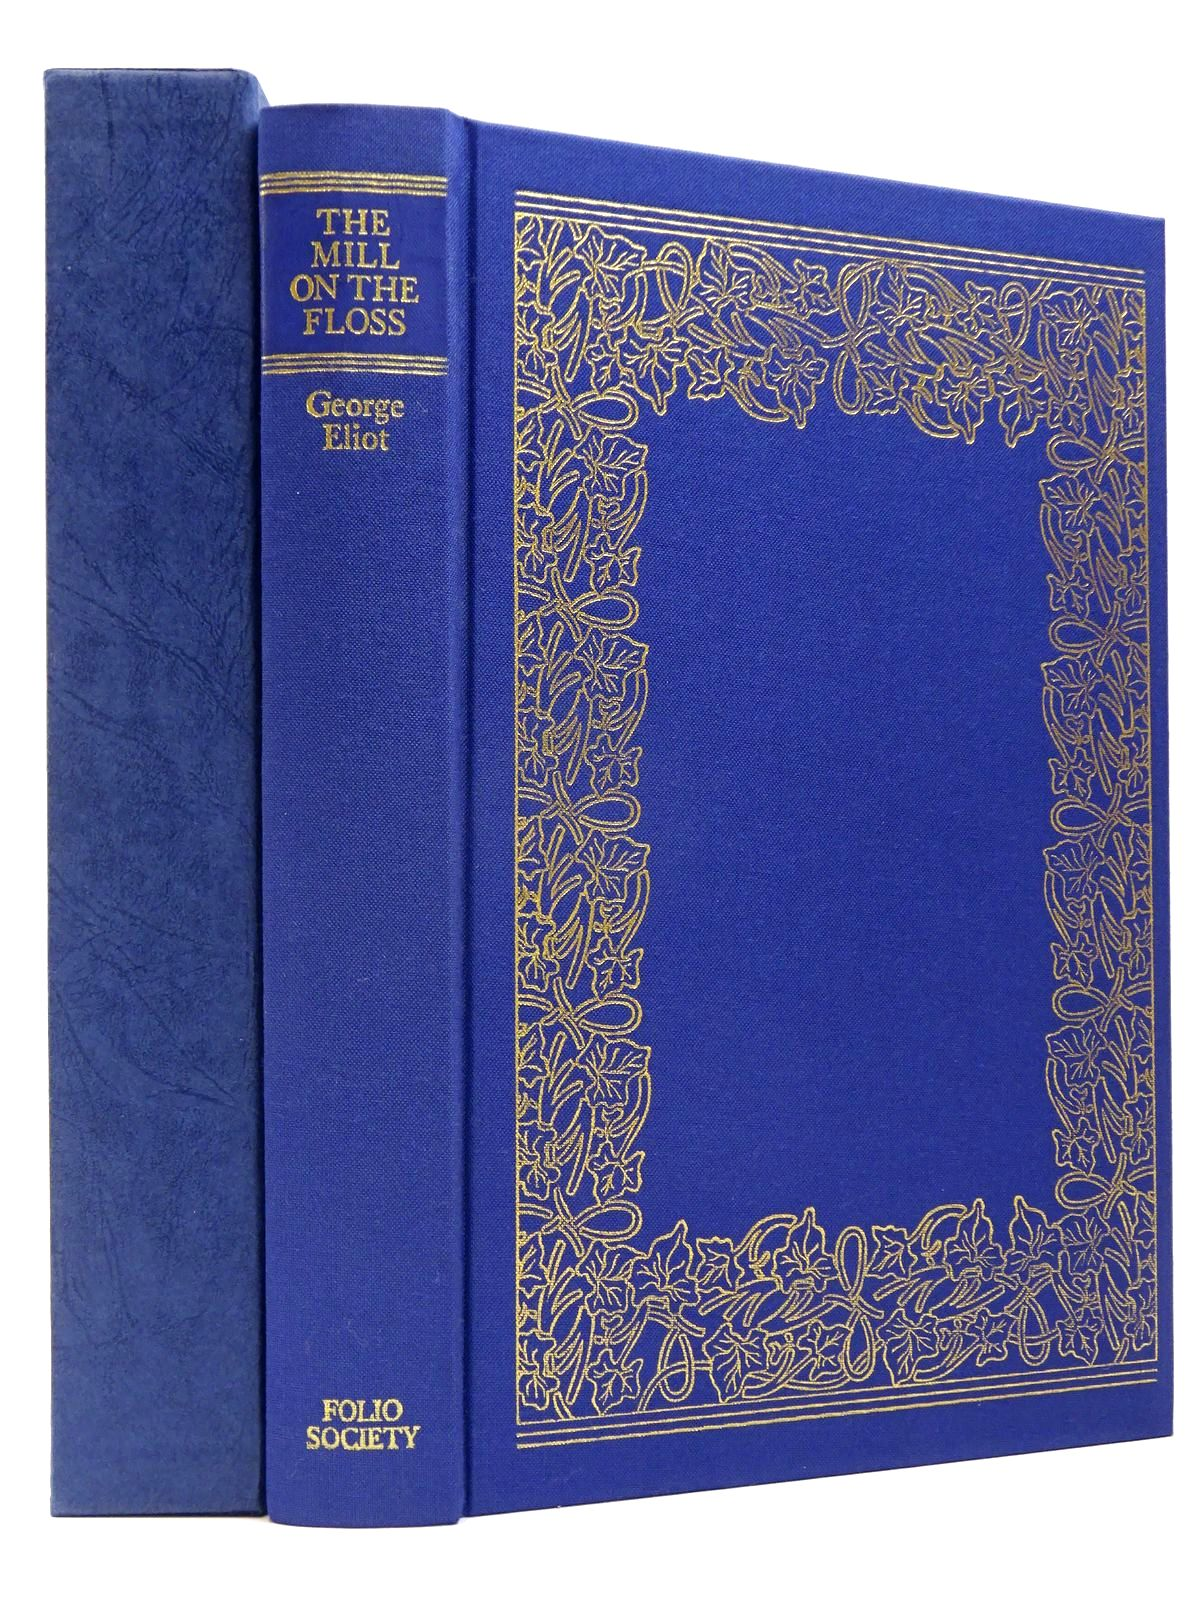 Photo of THE MILL ON THE FLOSS written by Eliot, George Mooney, Bel illustrated by MacNeill, Alyson published by Folio Society (STOCK CODE: 2129920)  for sale by Stella & Rose's Books